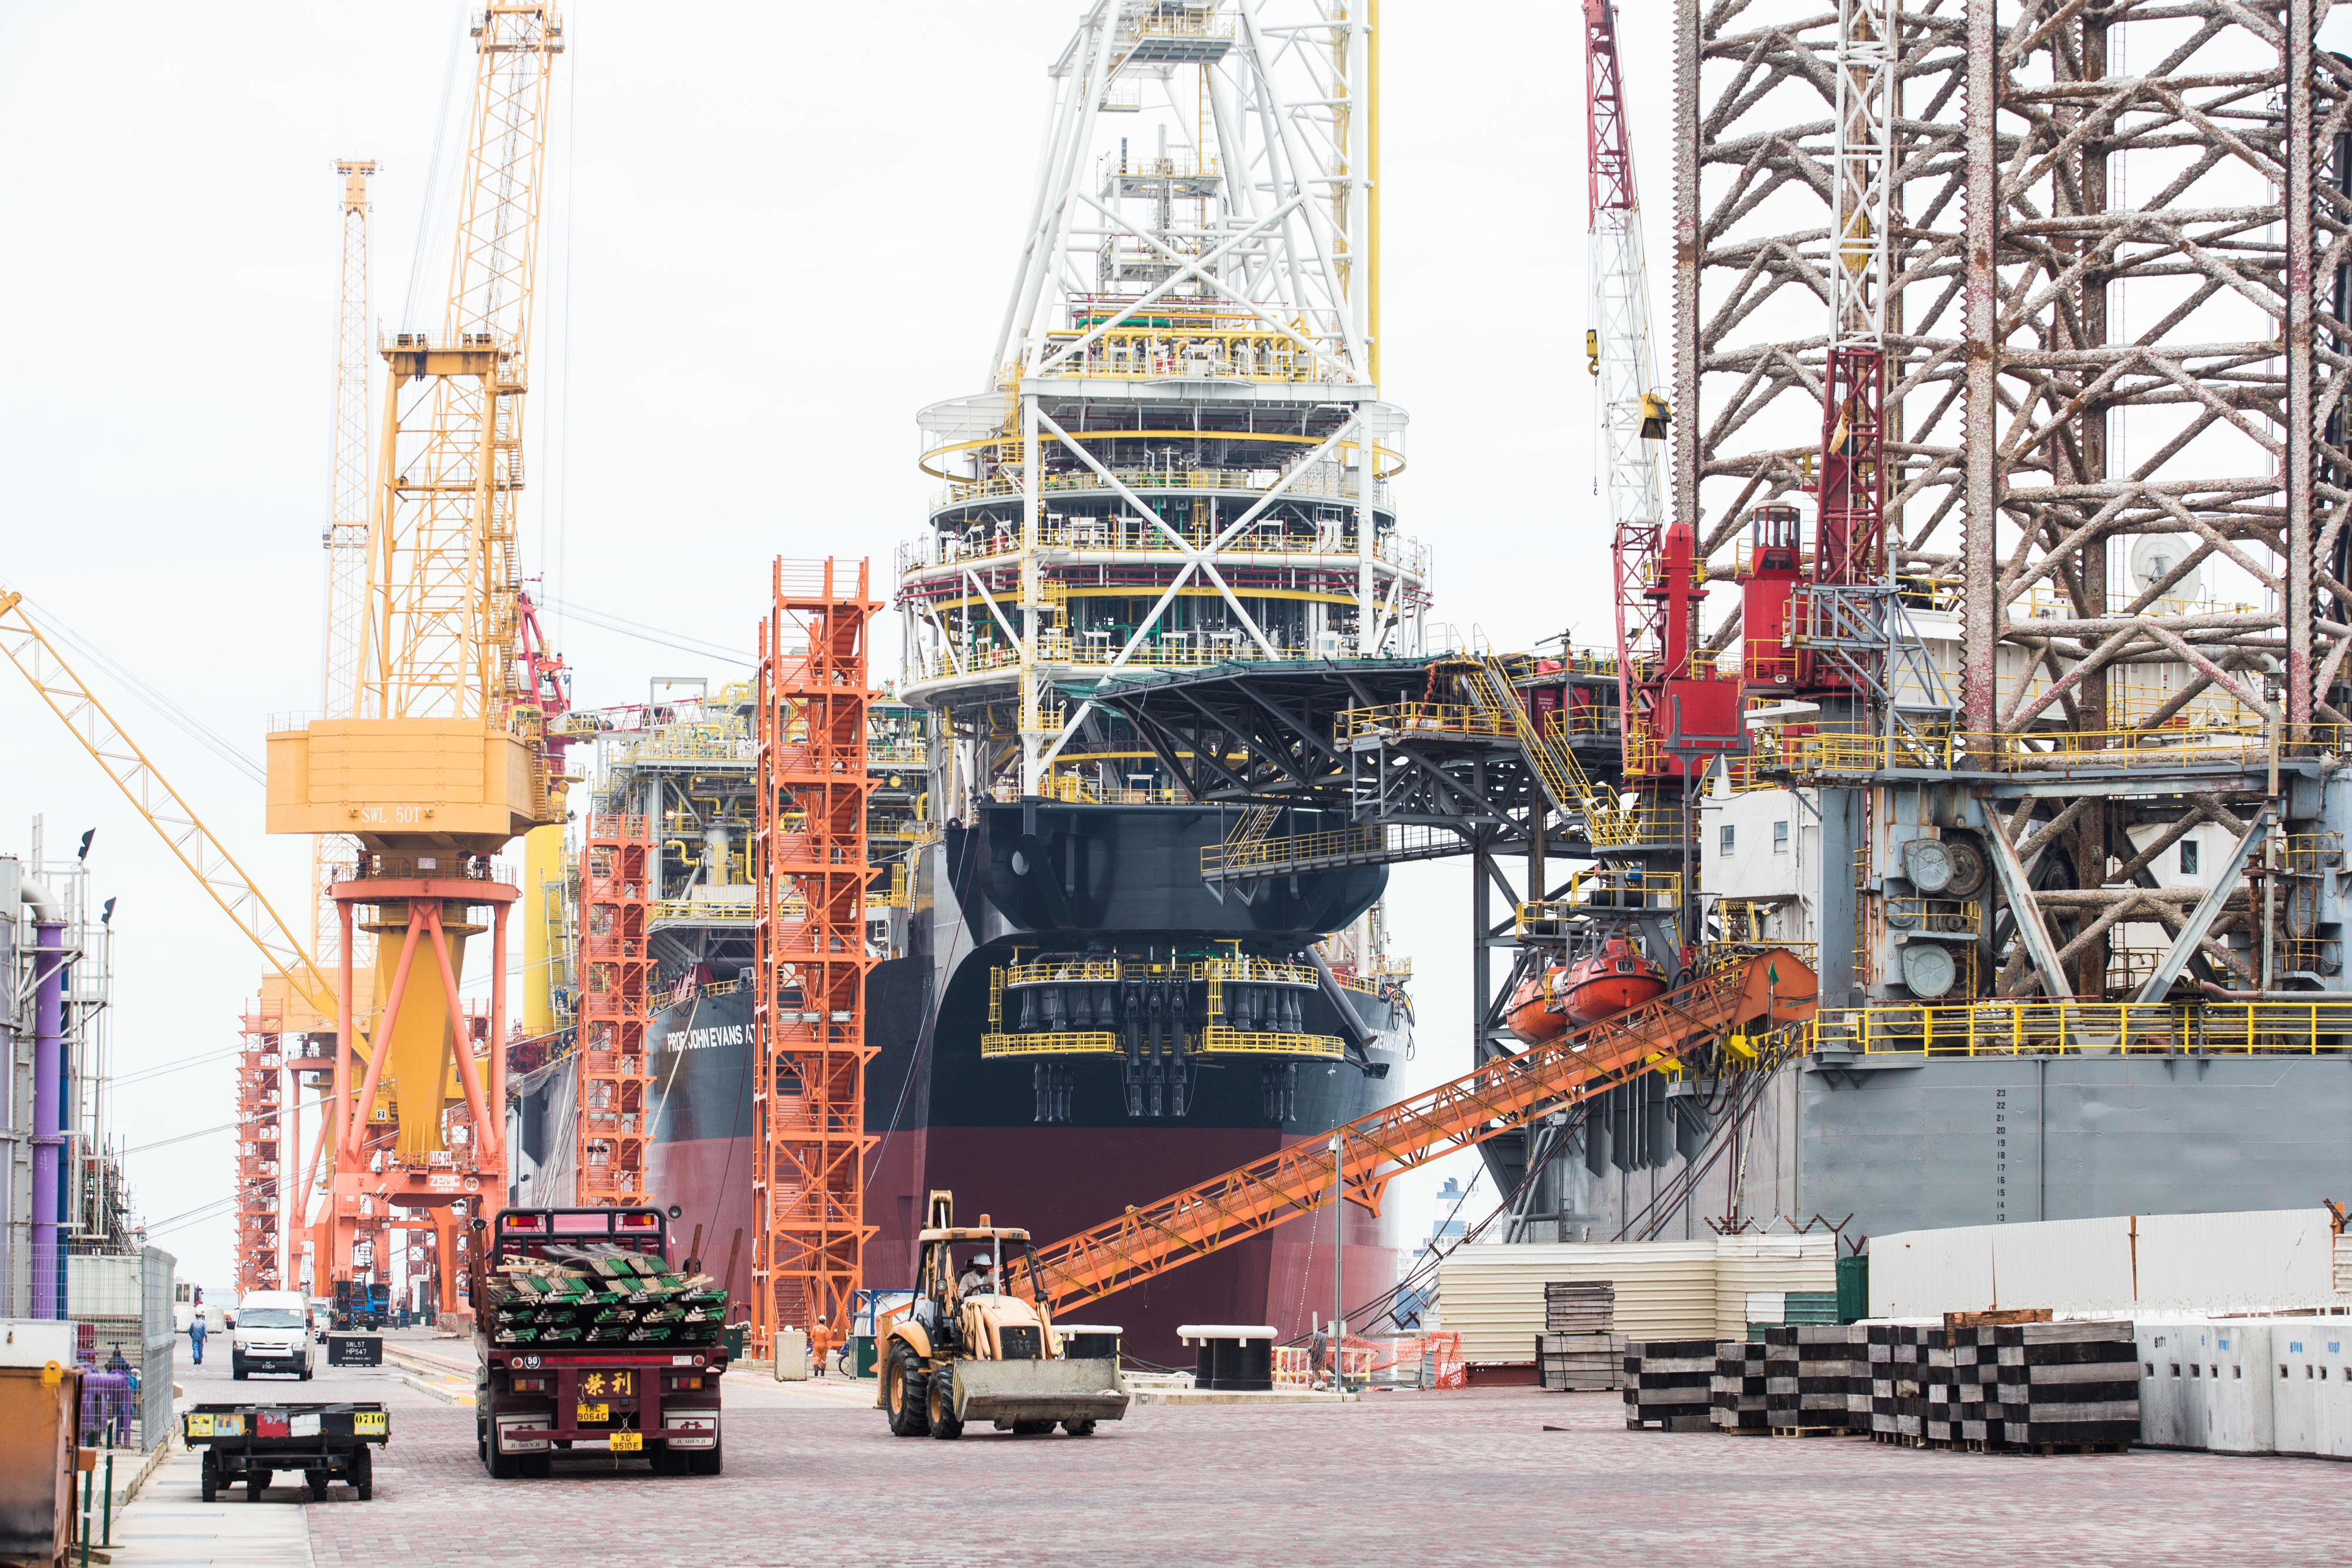 Tullow Oil CEO steps down; scraps dividends on Ghana problems